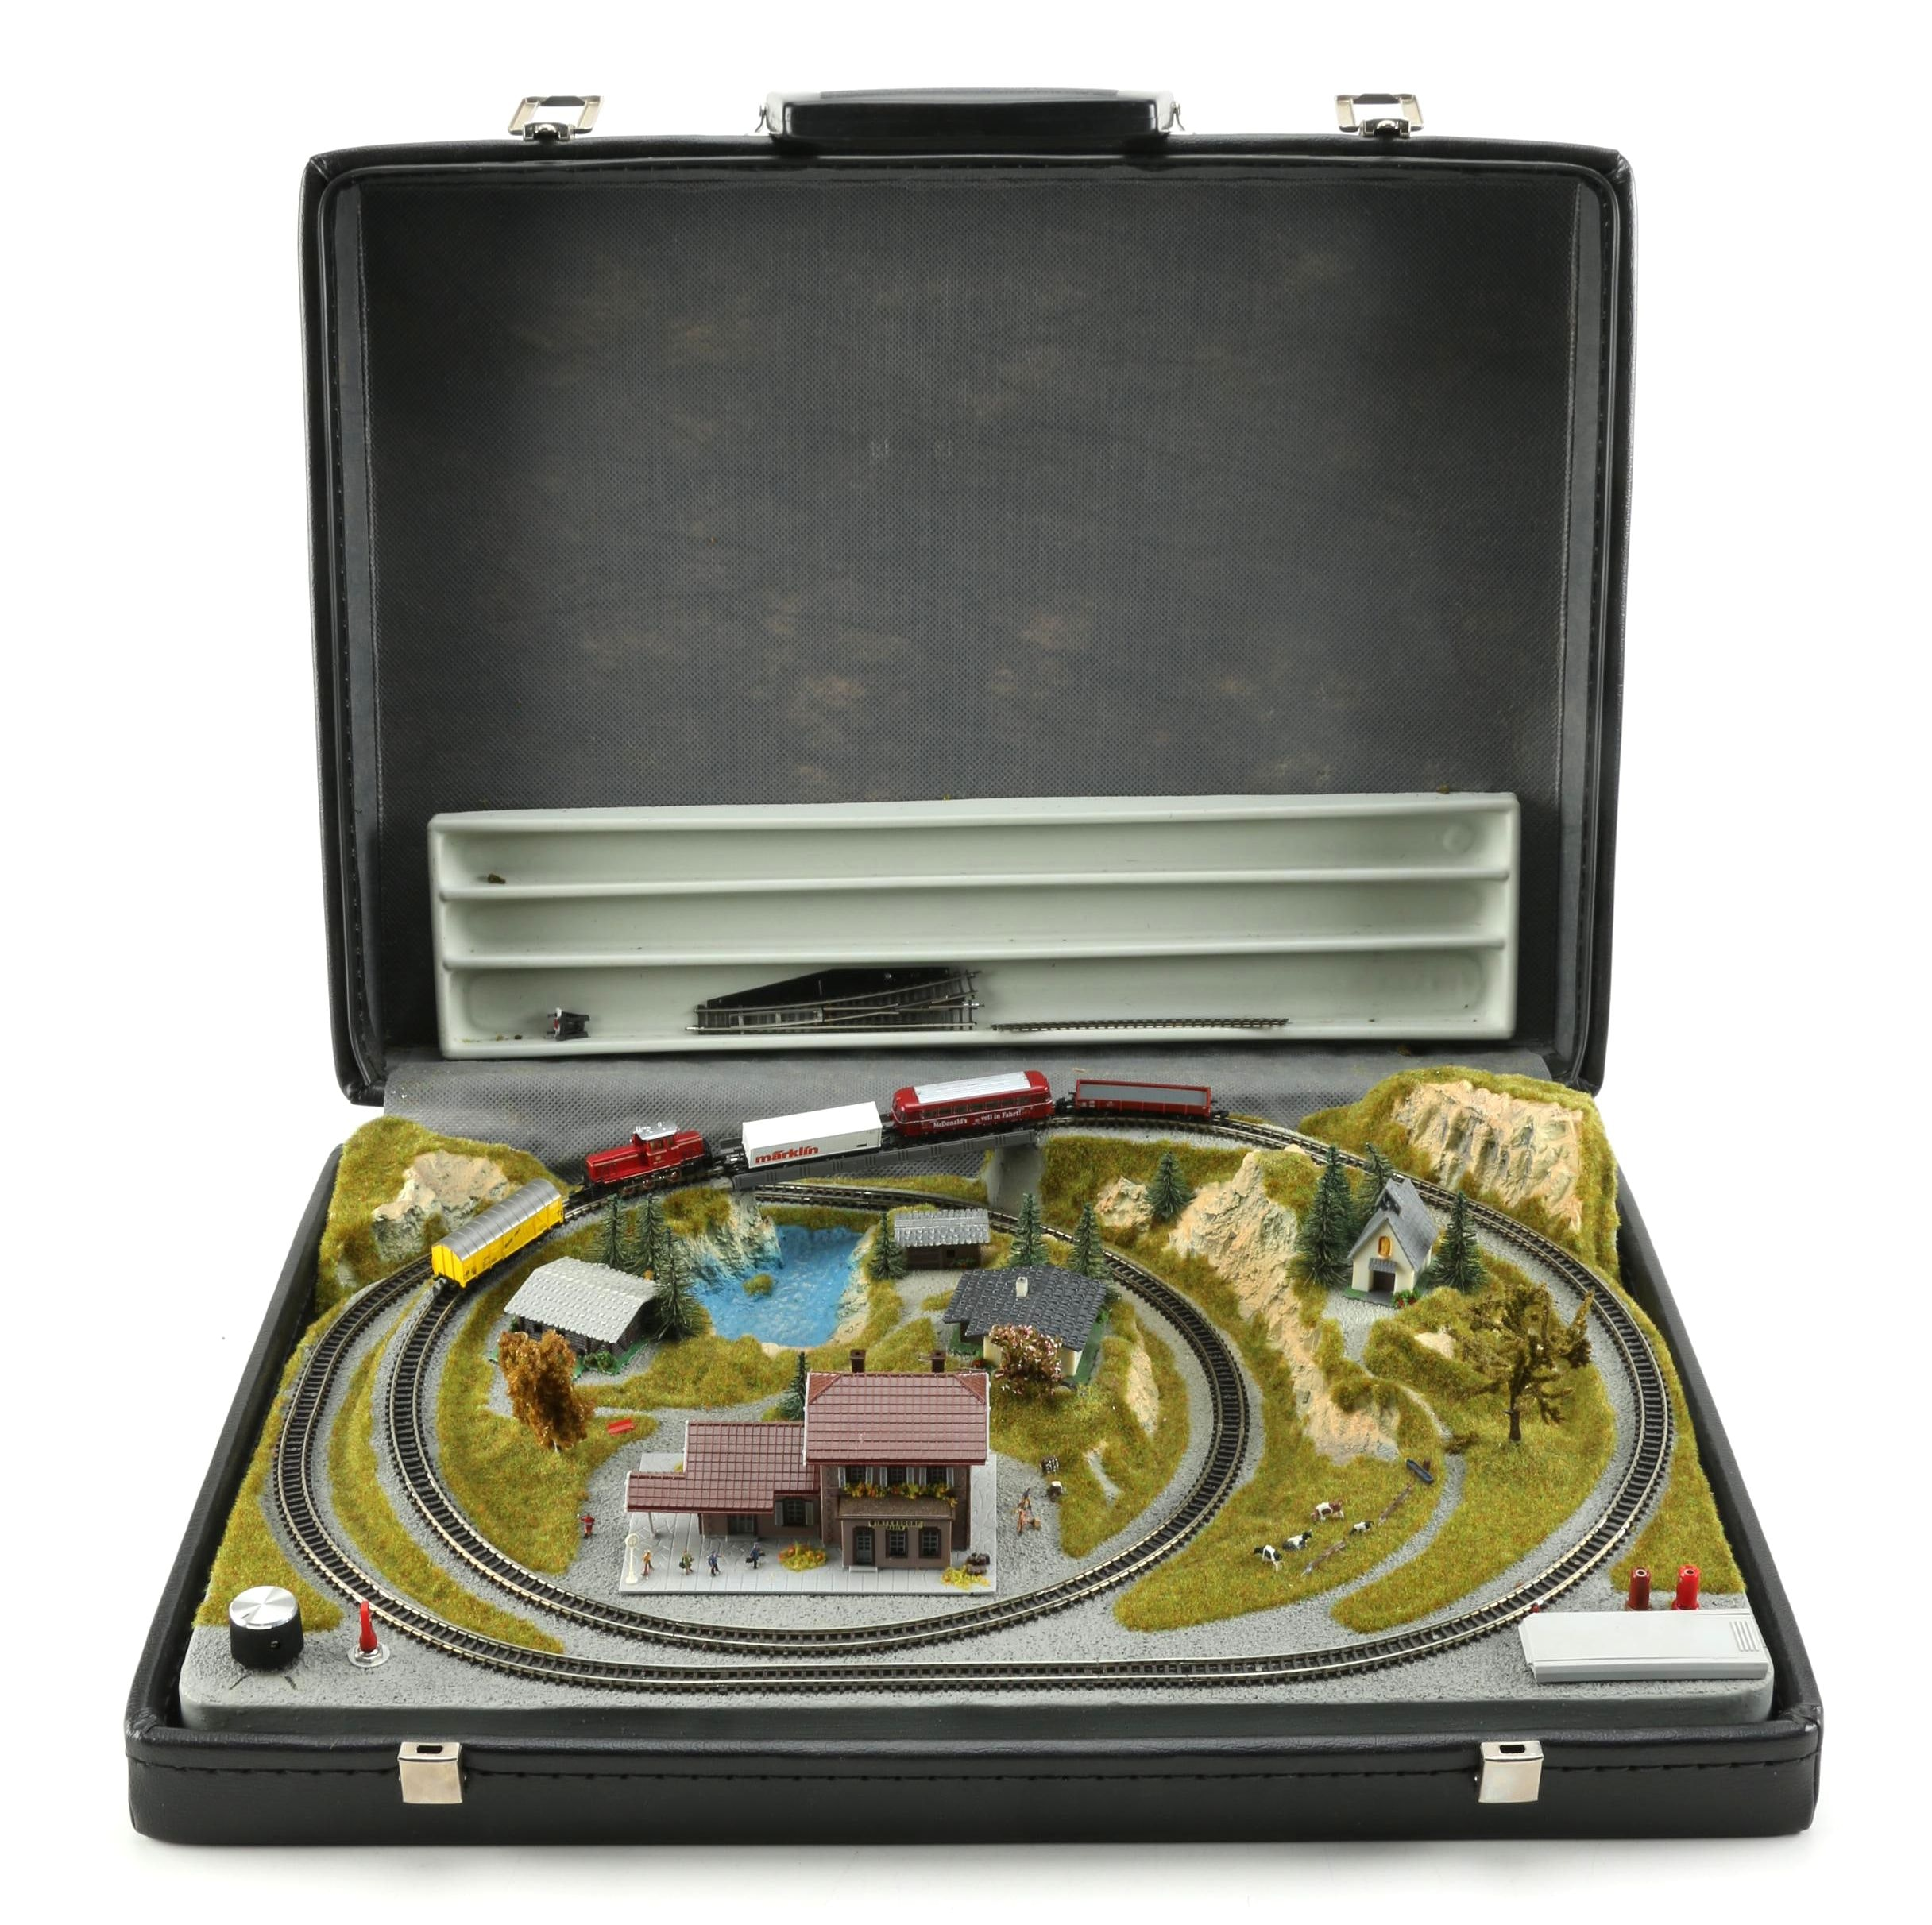 Motorized Miniature Train Set in Leather Attaché Case